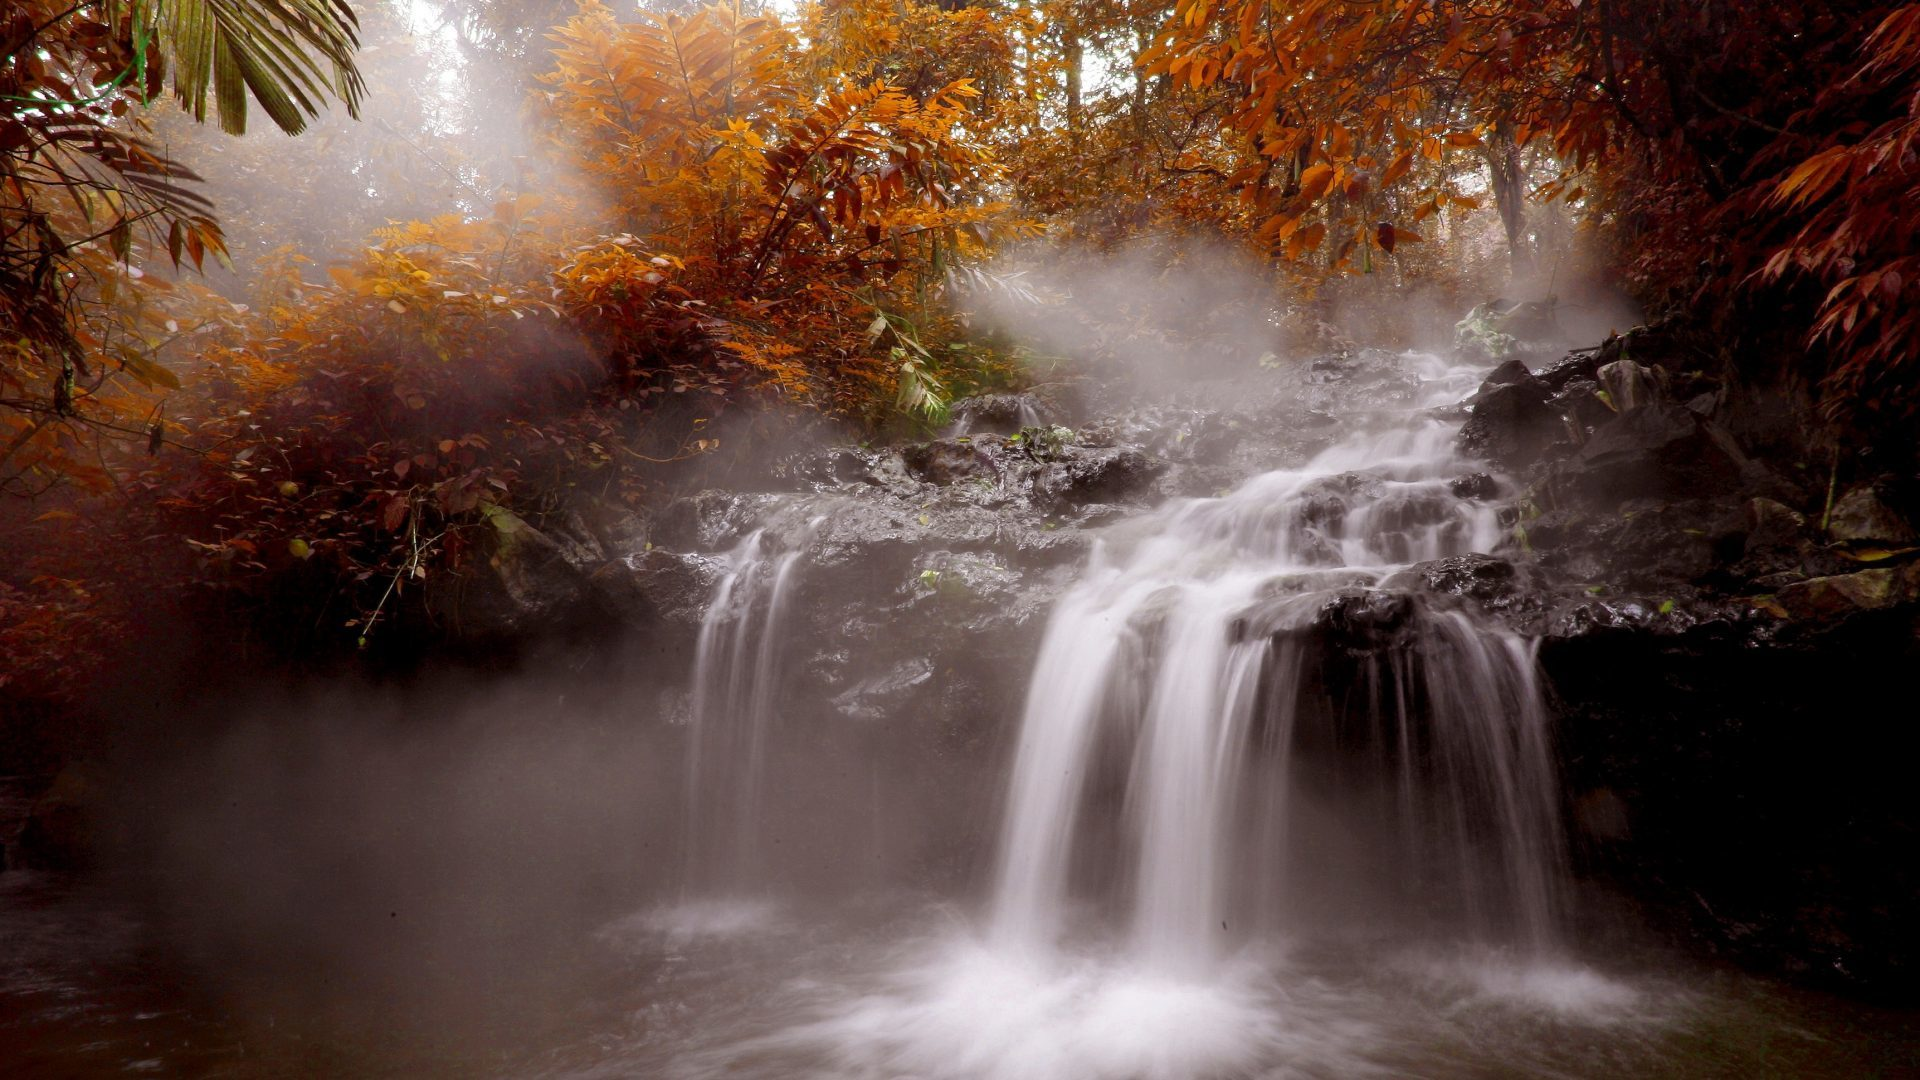 https://i2.wp.com/shivashaktibhava.files.wordpress.com/2018/03/waterfalls-nature-forest-mist-falls-autumn-waterfall-desktop-background-1920x10801.jpg?ssl=1&w=450